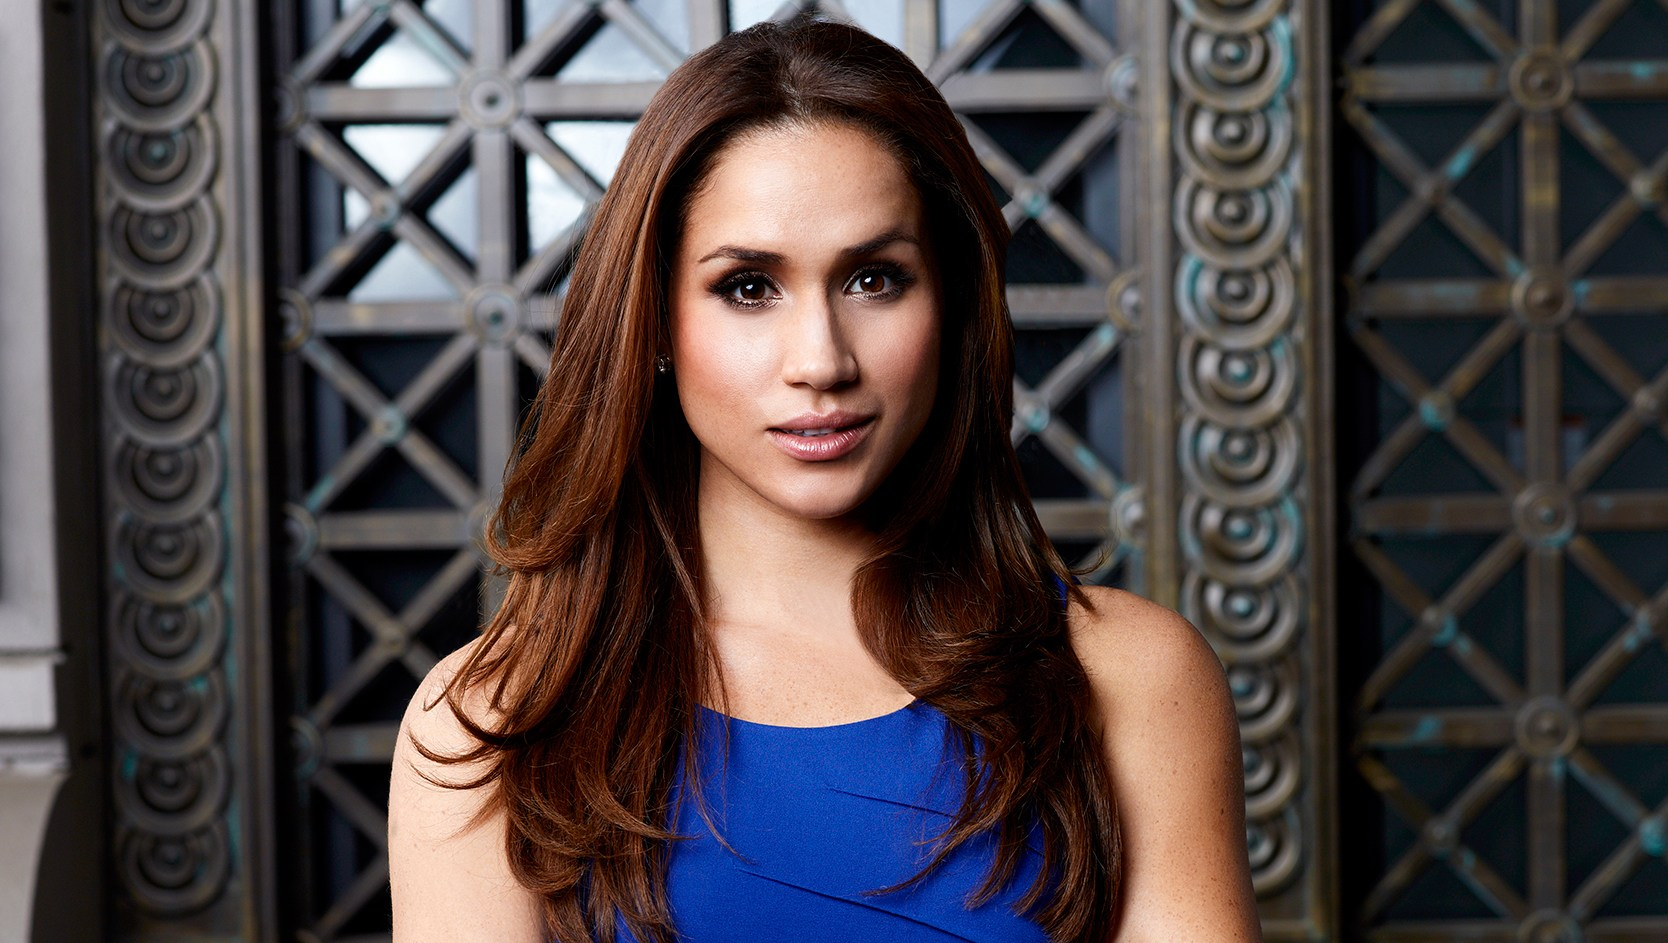 Meghan Markle Had an M15 Agent Follow Her Around 'Suits' Set